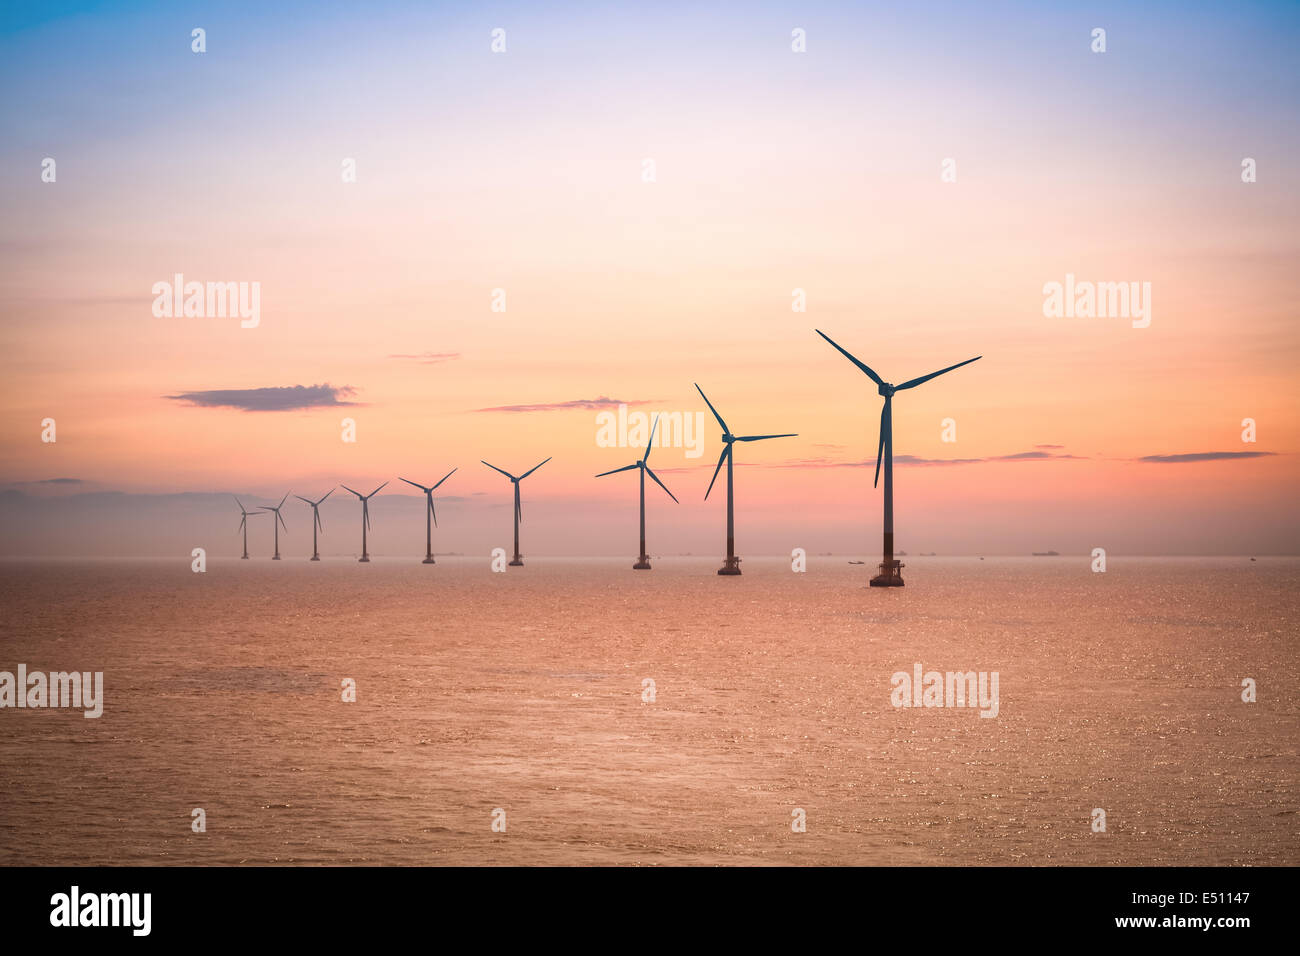 offshore wind farm at dusk - Stock Image